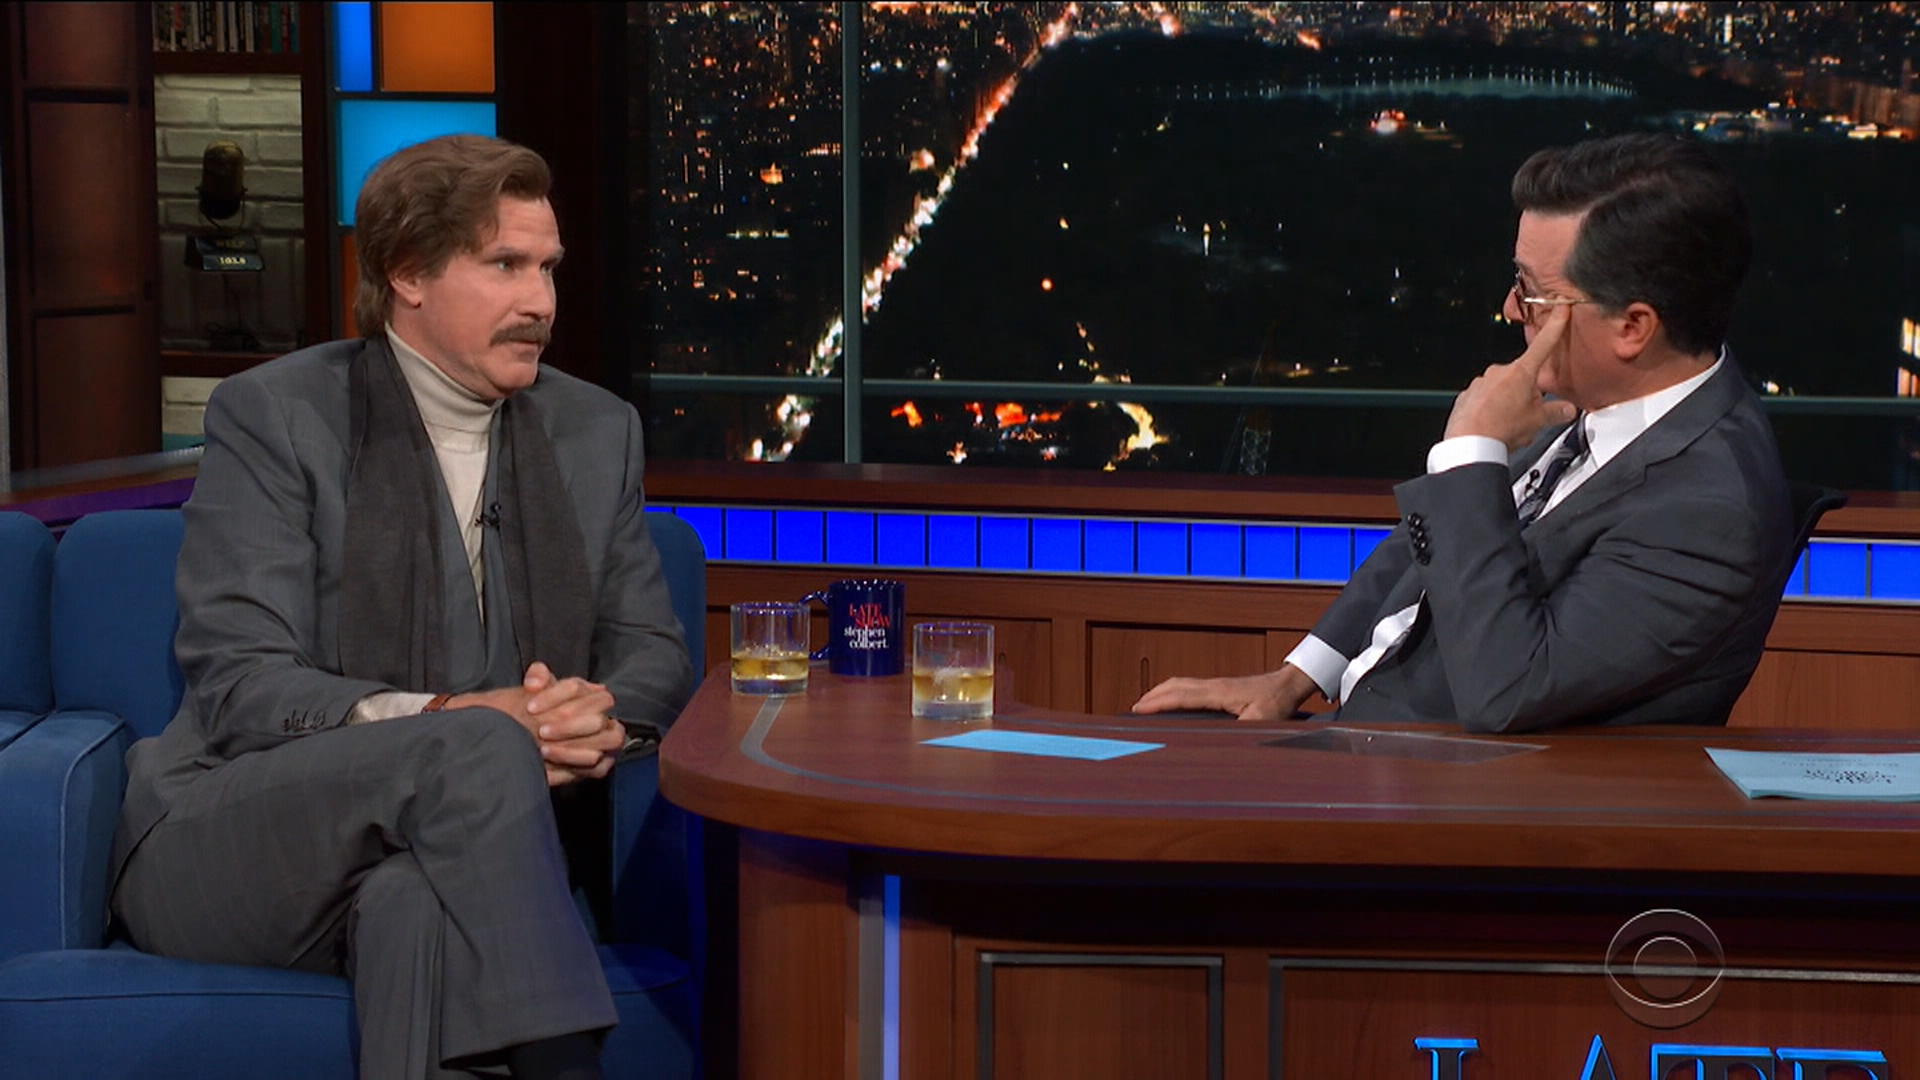 Free full episodes of The Late Show with Stephen Colbert on GlobalTV